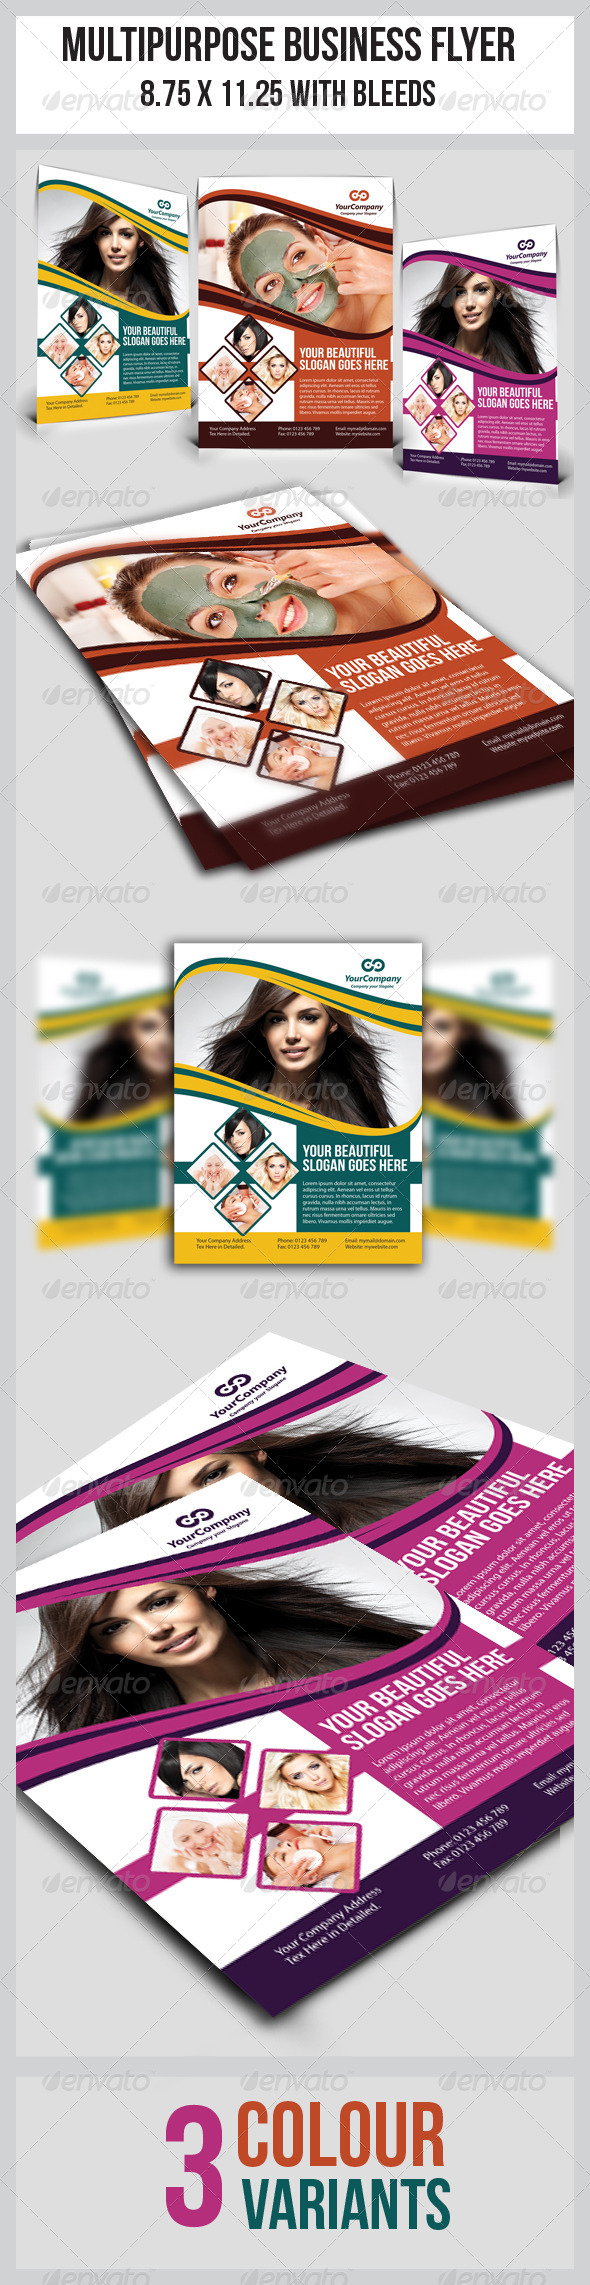 GraphicRiver Multipurpose Business Flyer 4257481